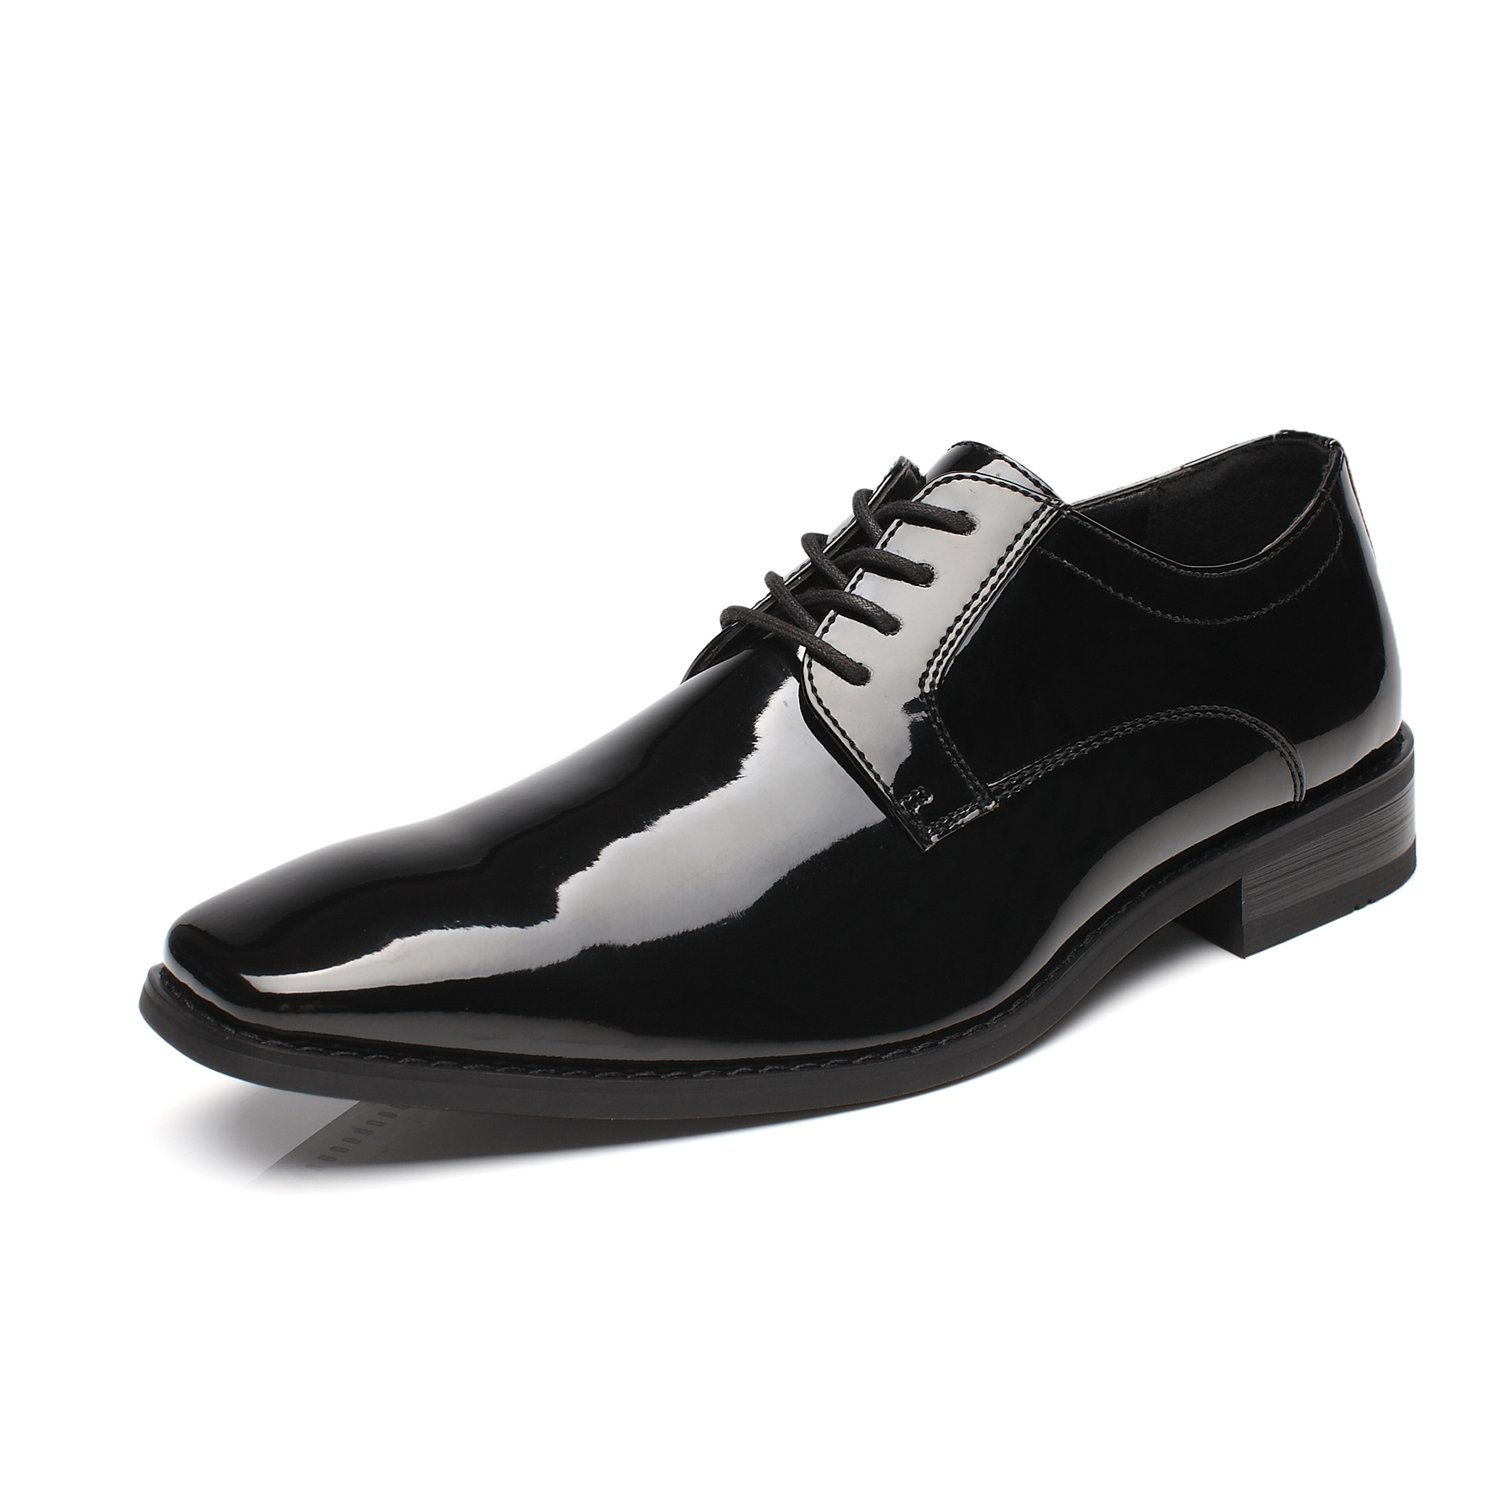 Faranzi Oxford Shoes for Men Patent Leather Plain Toe Tuxedo Oxford Mens Dress Shoes Zapatos de Hombre Lace Up Comfortable Classic Modern Formal Business Shoes by Faranzi